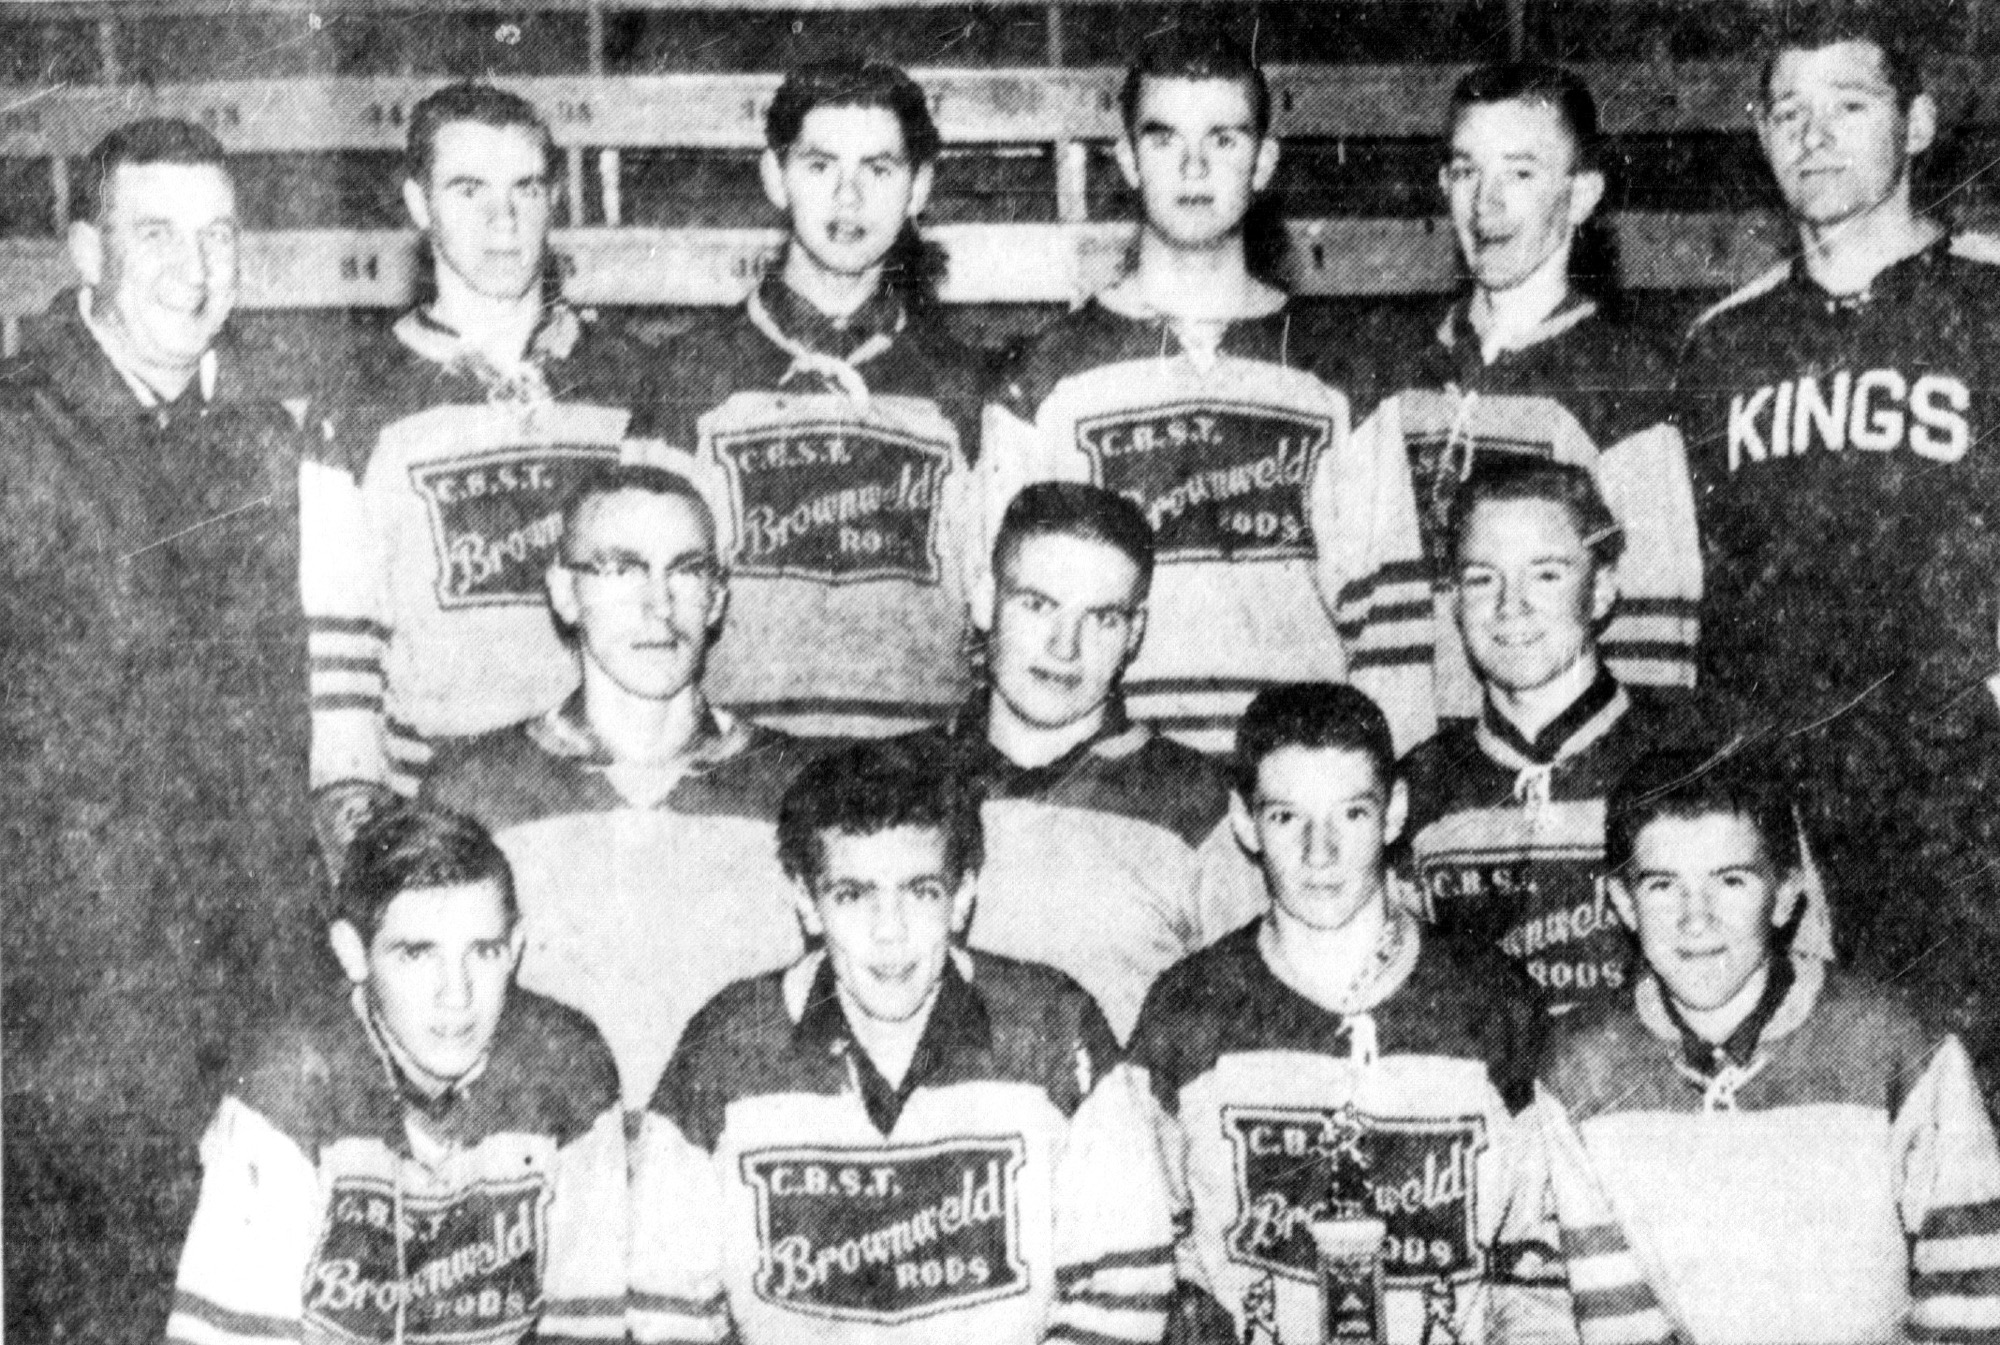 The Travellers beat the Lions 2-0 in the best-of-three 1963 city juvenile final. The team included: Front row: (left to right) Bill Fairbairn, Bill Gray, Ron Hawkins and Greg Sutherland. Middle row: Larry Brown, Richard Bull, Ray Hurd. Back row: Manager Ray Bull, David Bender, John Owens, Greg Borotsik, Brian Johnston and coach Jim Mann. Missing: Assistant coach Mike Jaskow, Brian Lange and Mark Robinson.